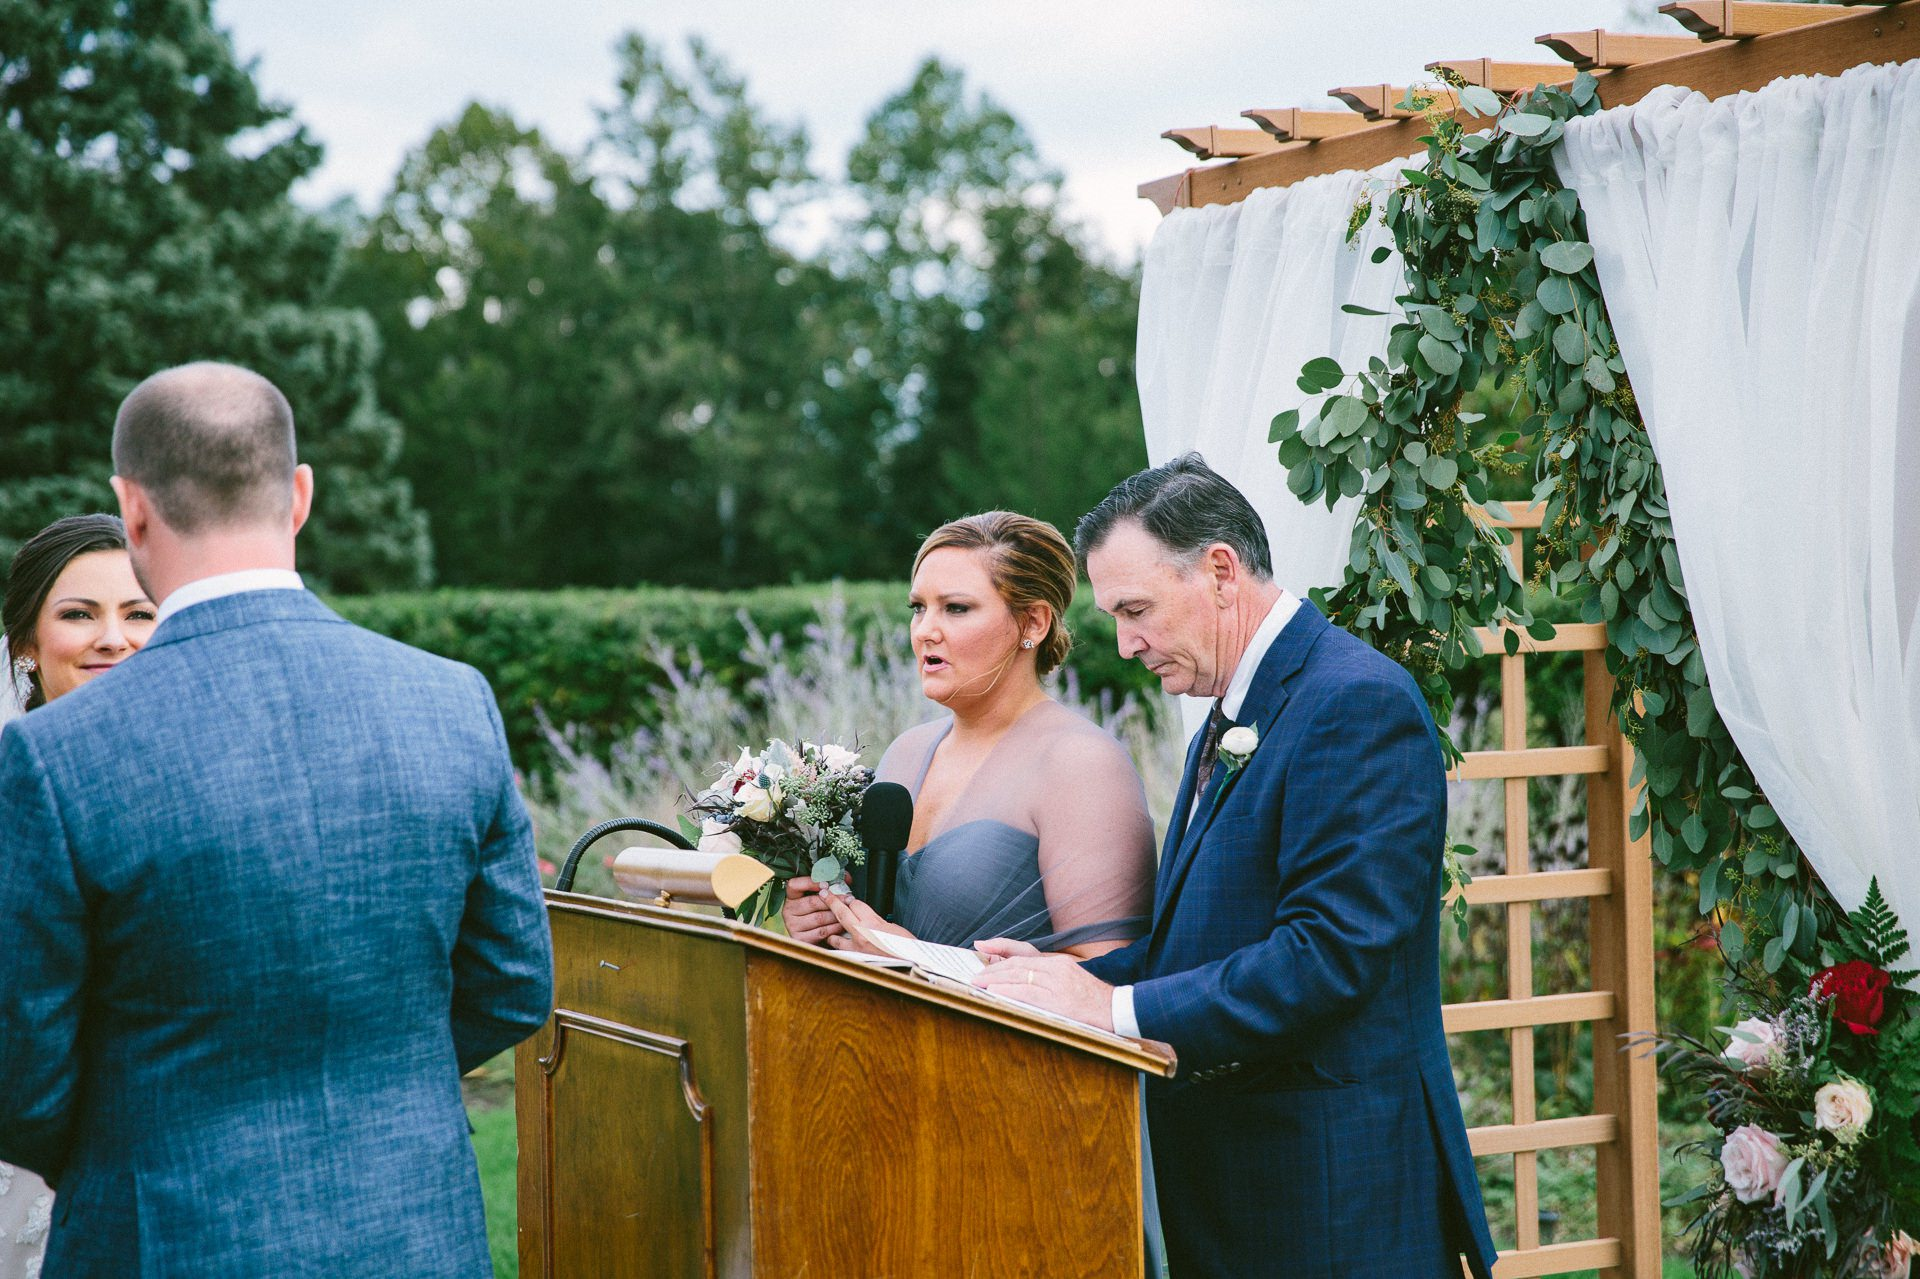 Wedding at Kirtland Country Club in Willoughby 3 3.jpg